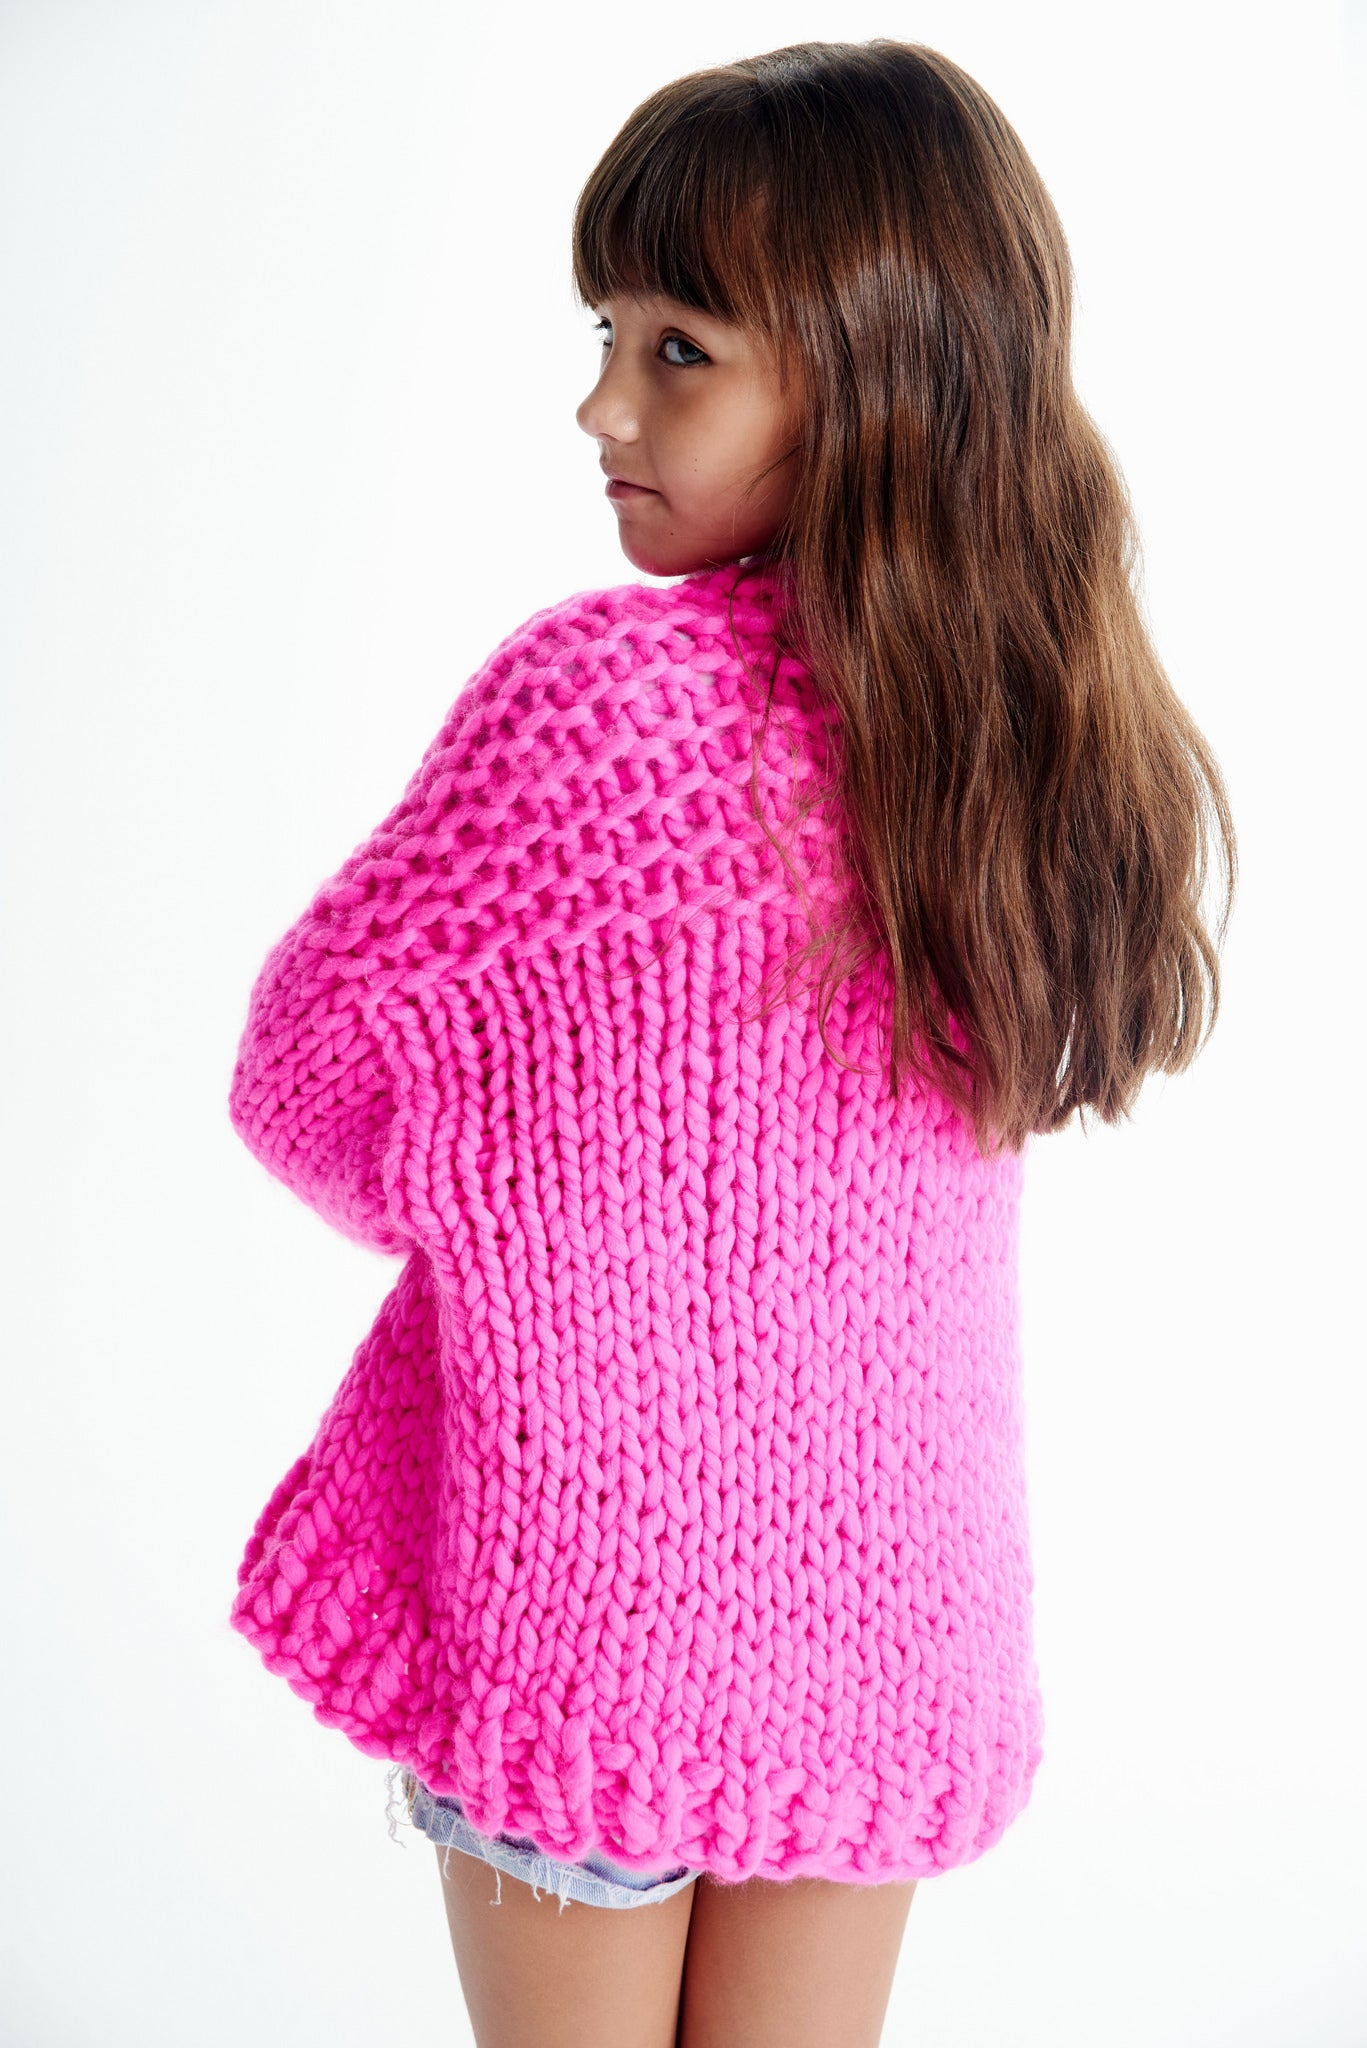 Mini Cardi 6-8 years - Merino